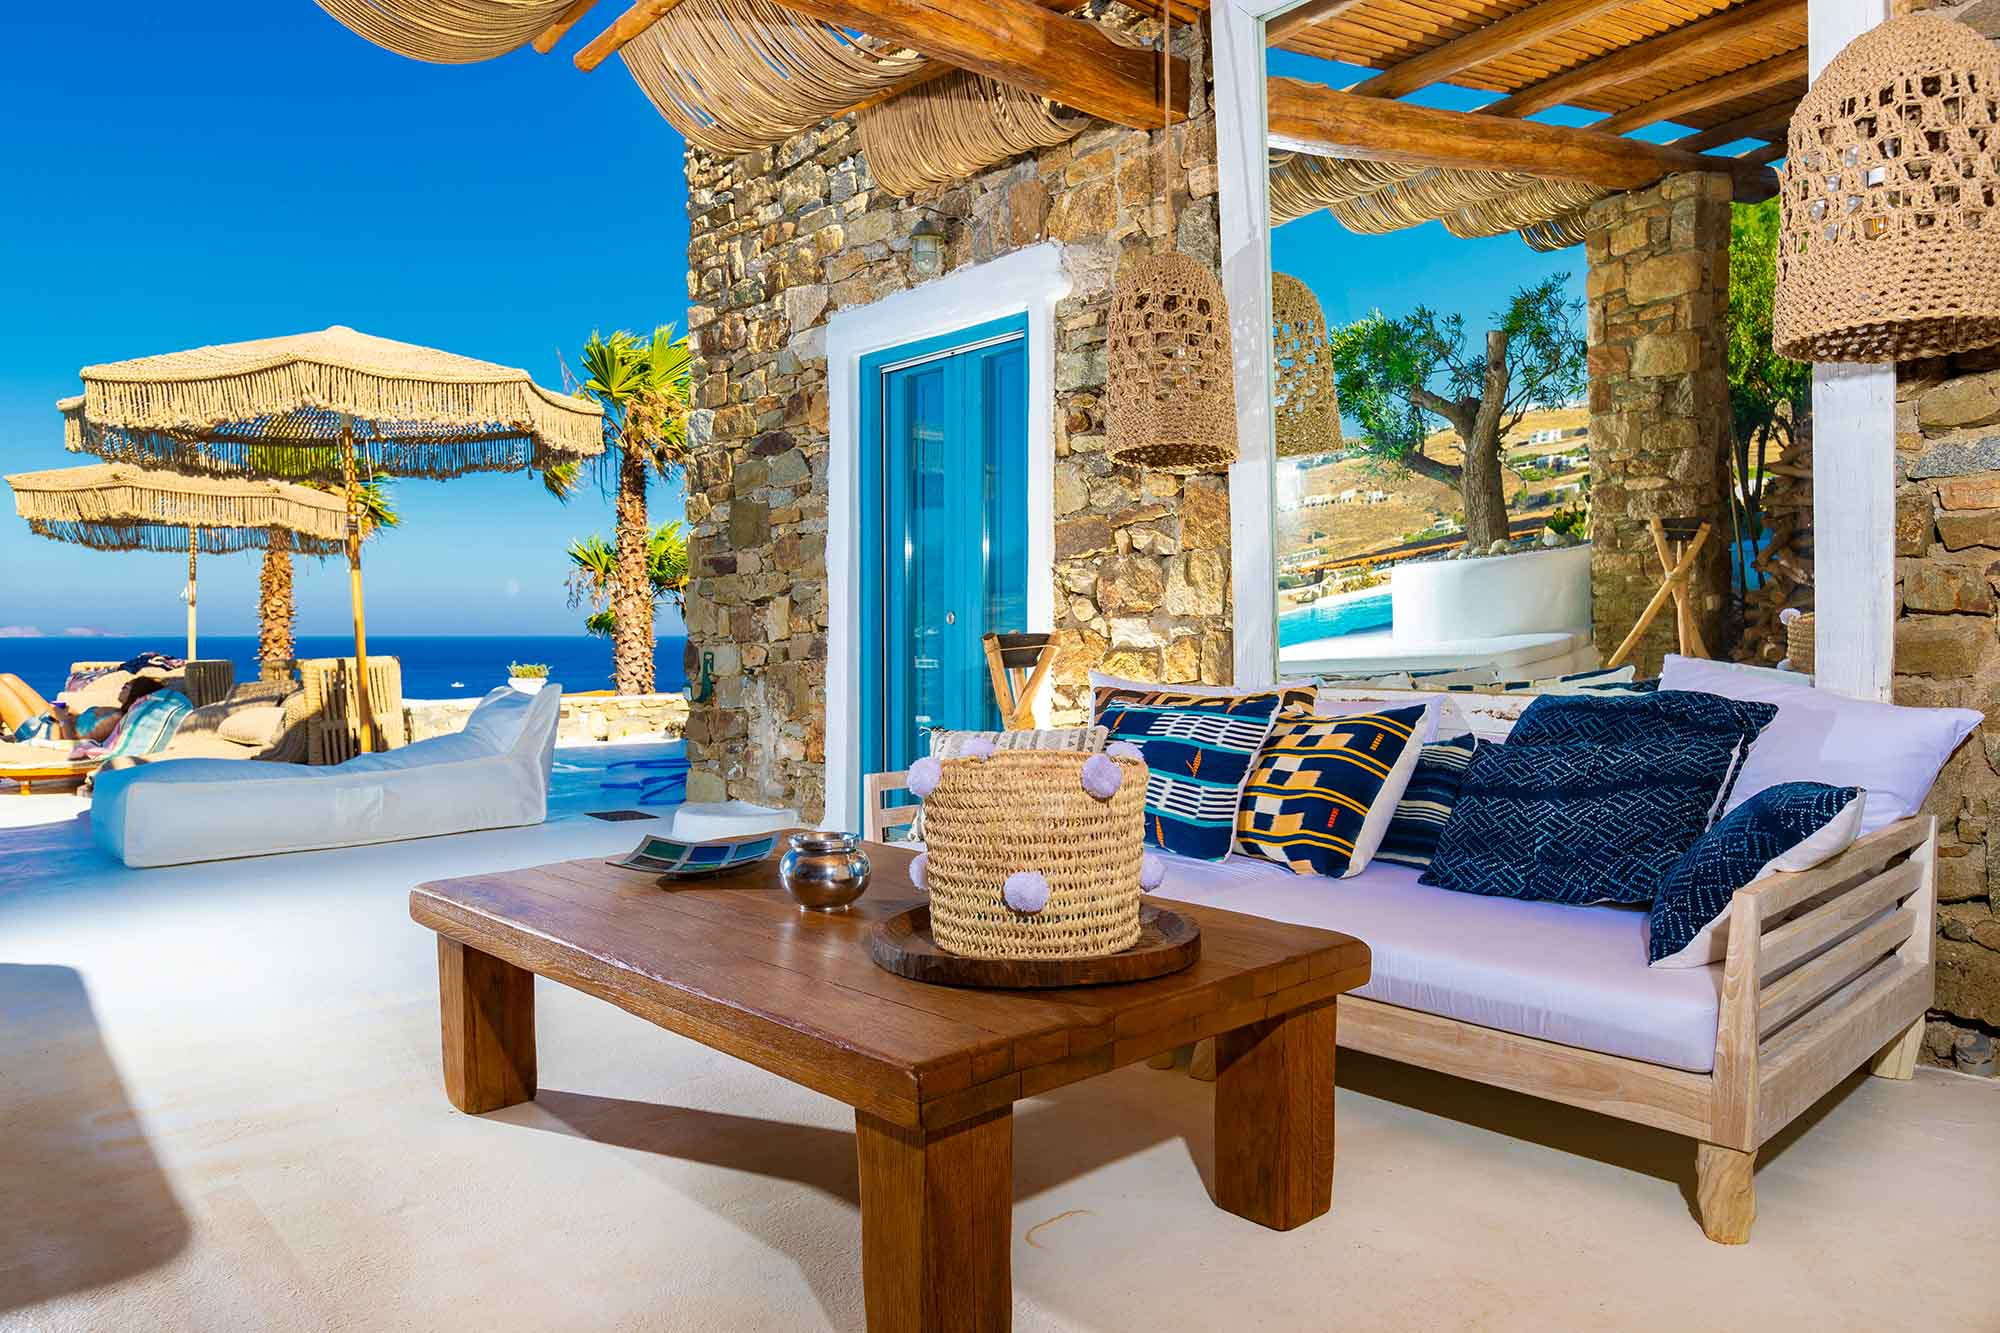 RENT A LUXURIOUS VILLA BY THE SEA IN MYKONOS - VILLA KARKOS - terrace